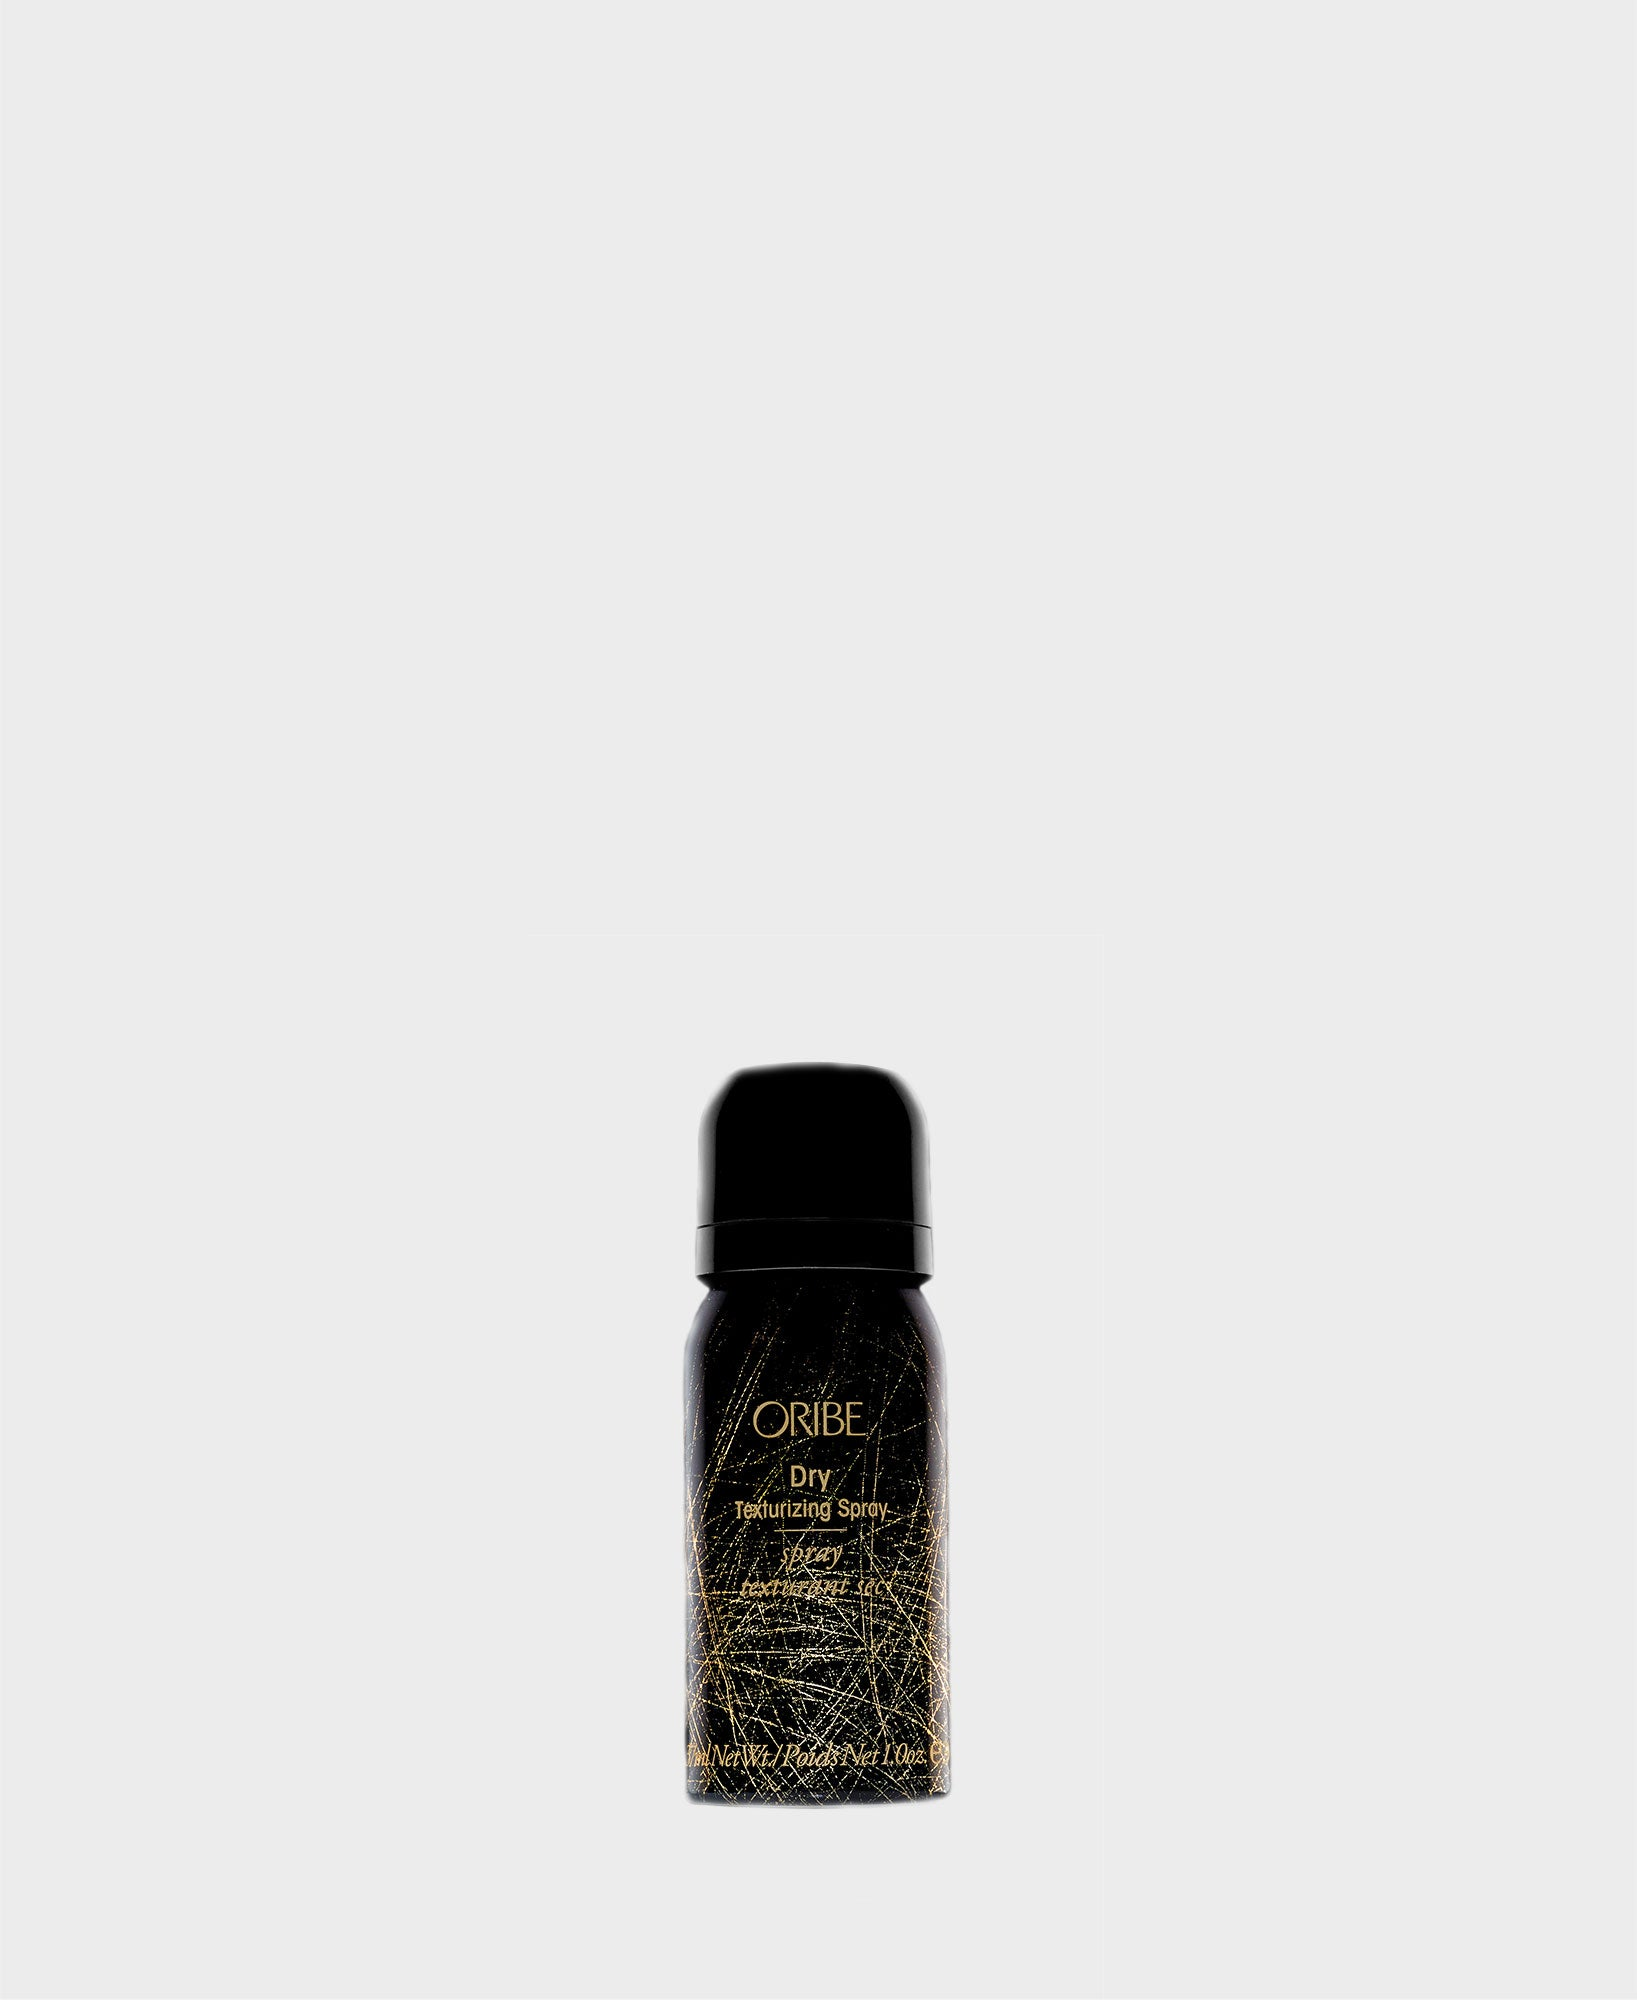 DRY TEXTURIZING SPRAY MINI 37ML